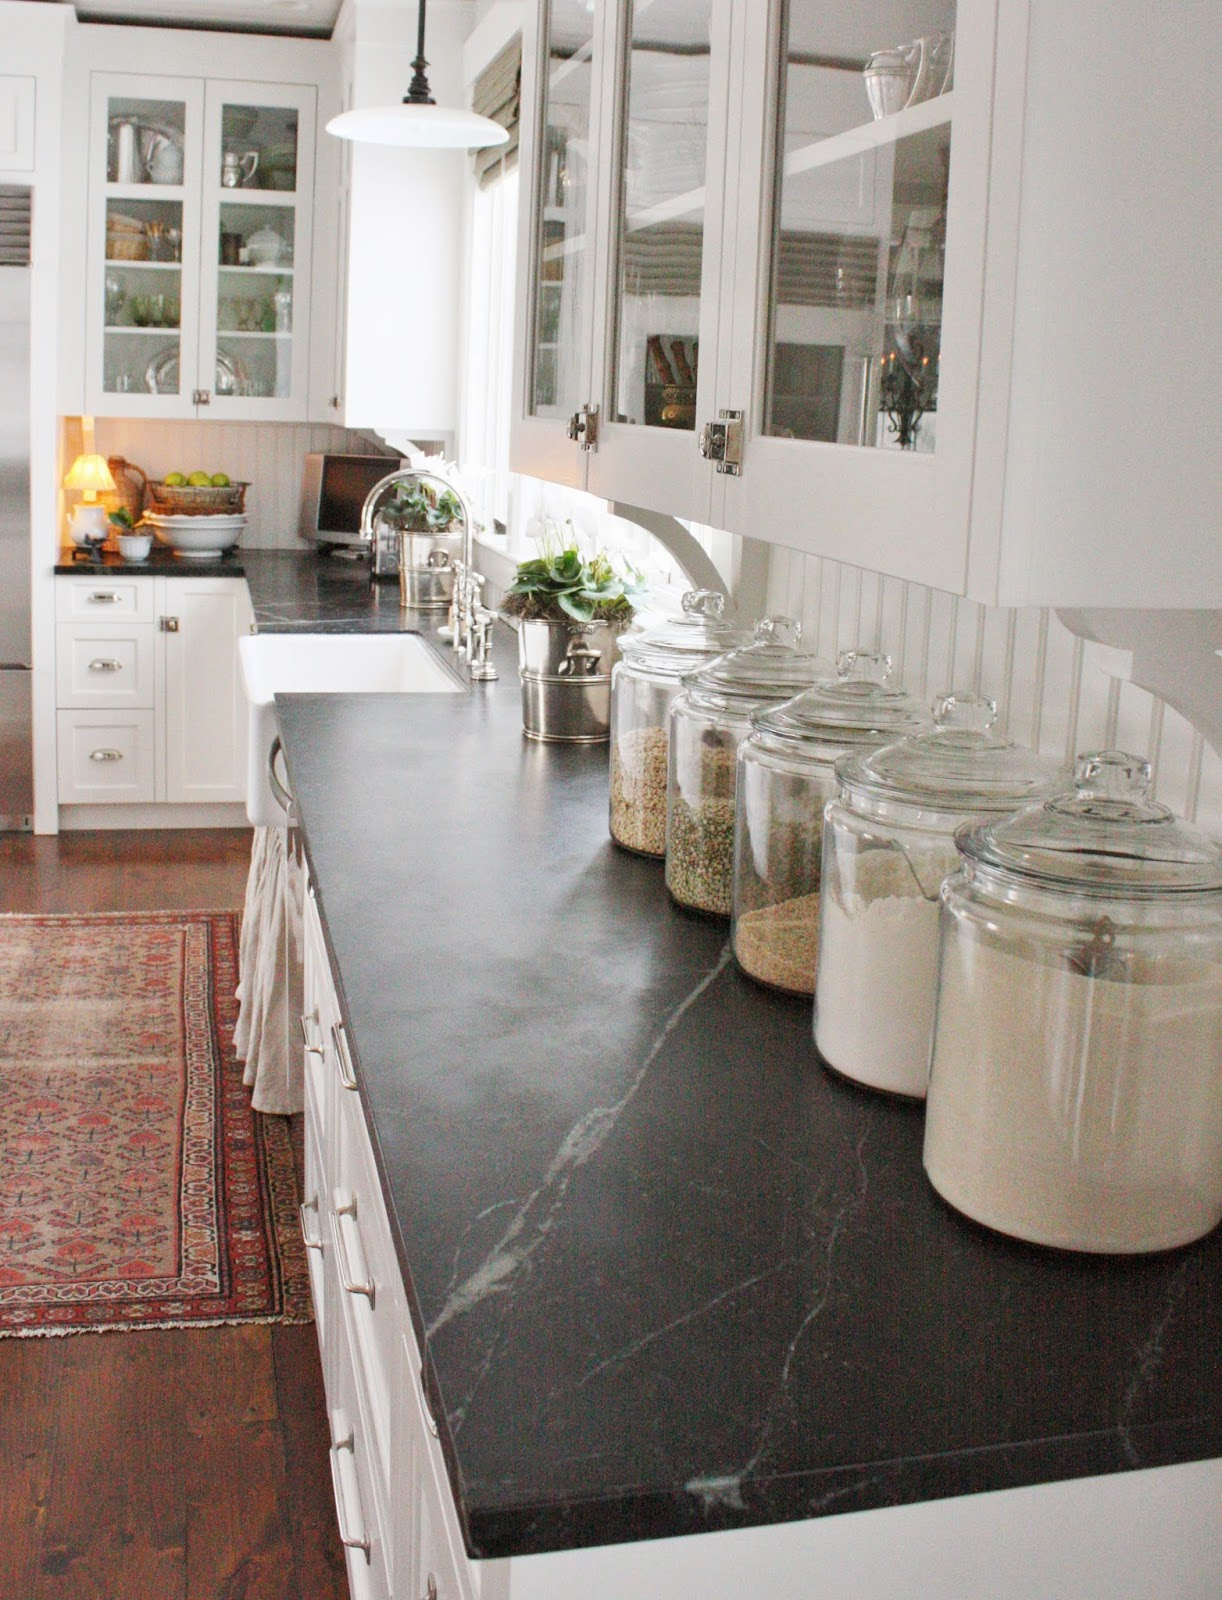 Decorating with glass canisters in the kitchen (Photo via For the Love of a House) | anderson + grant